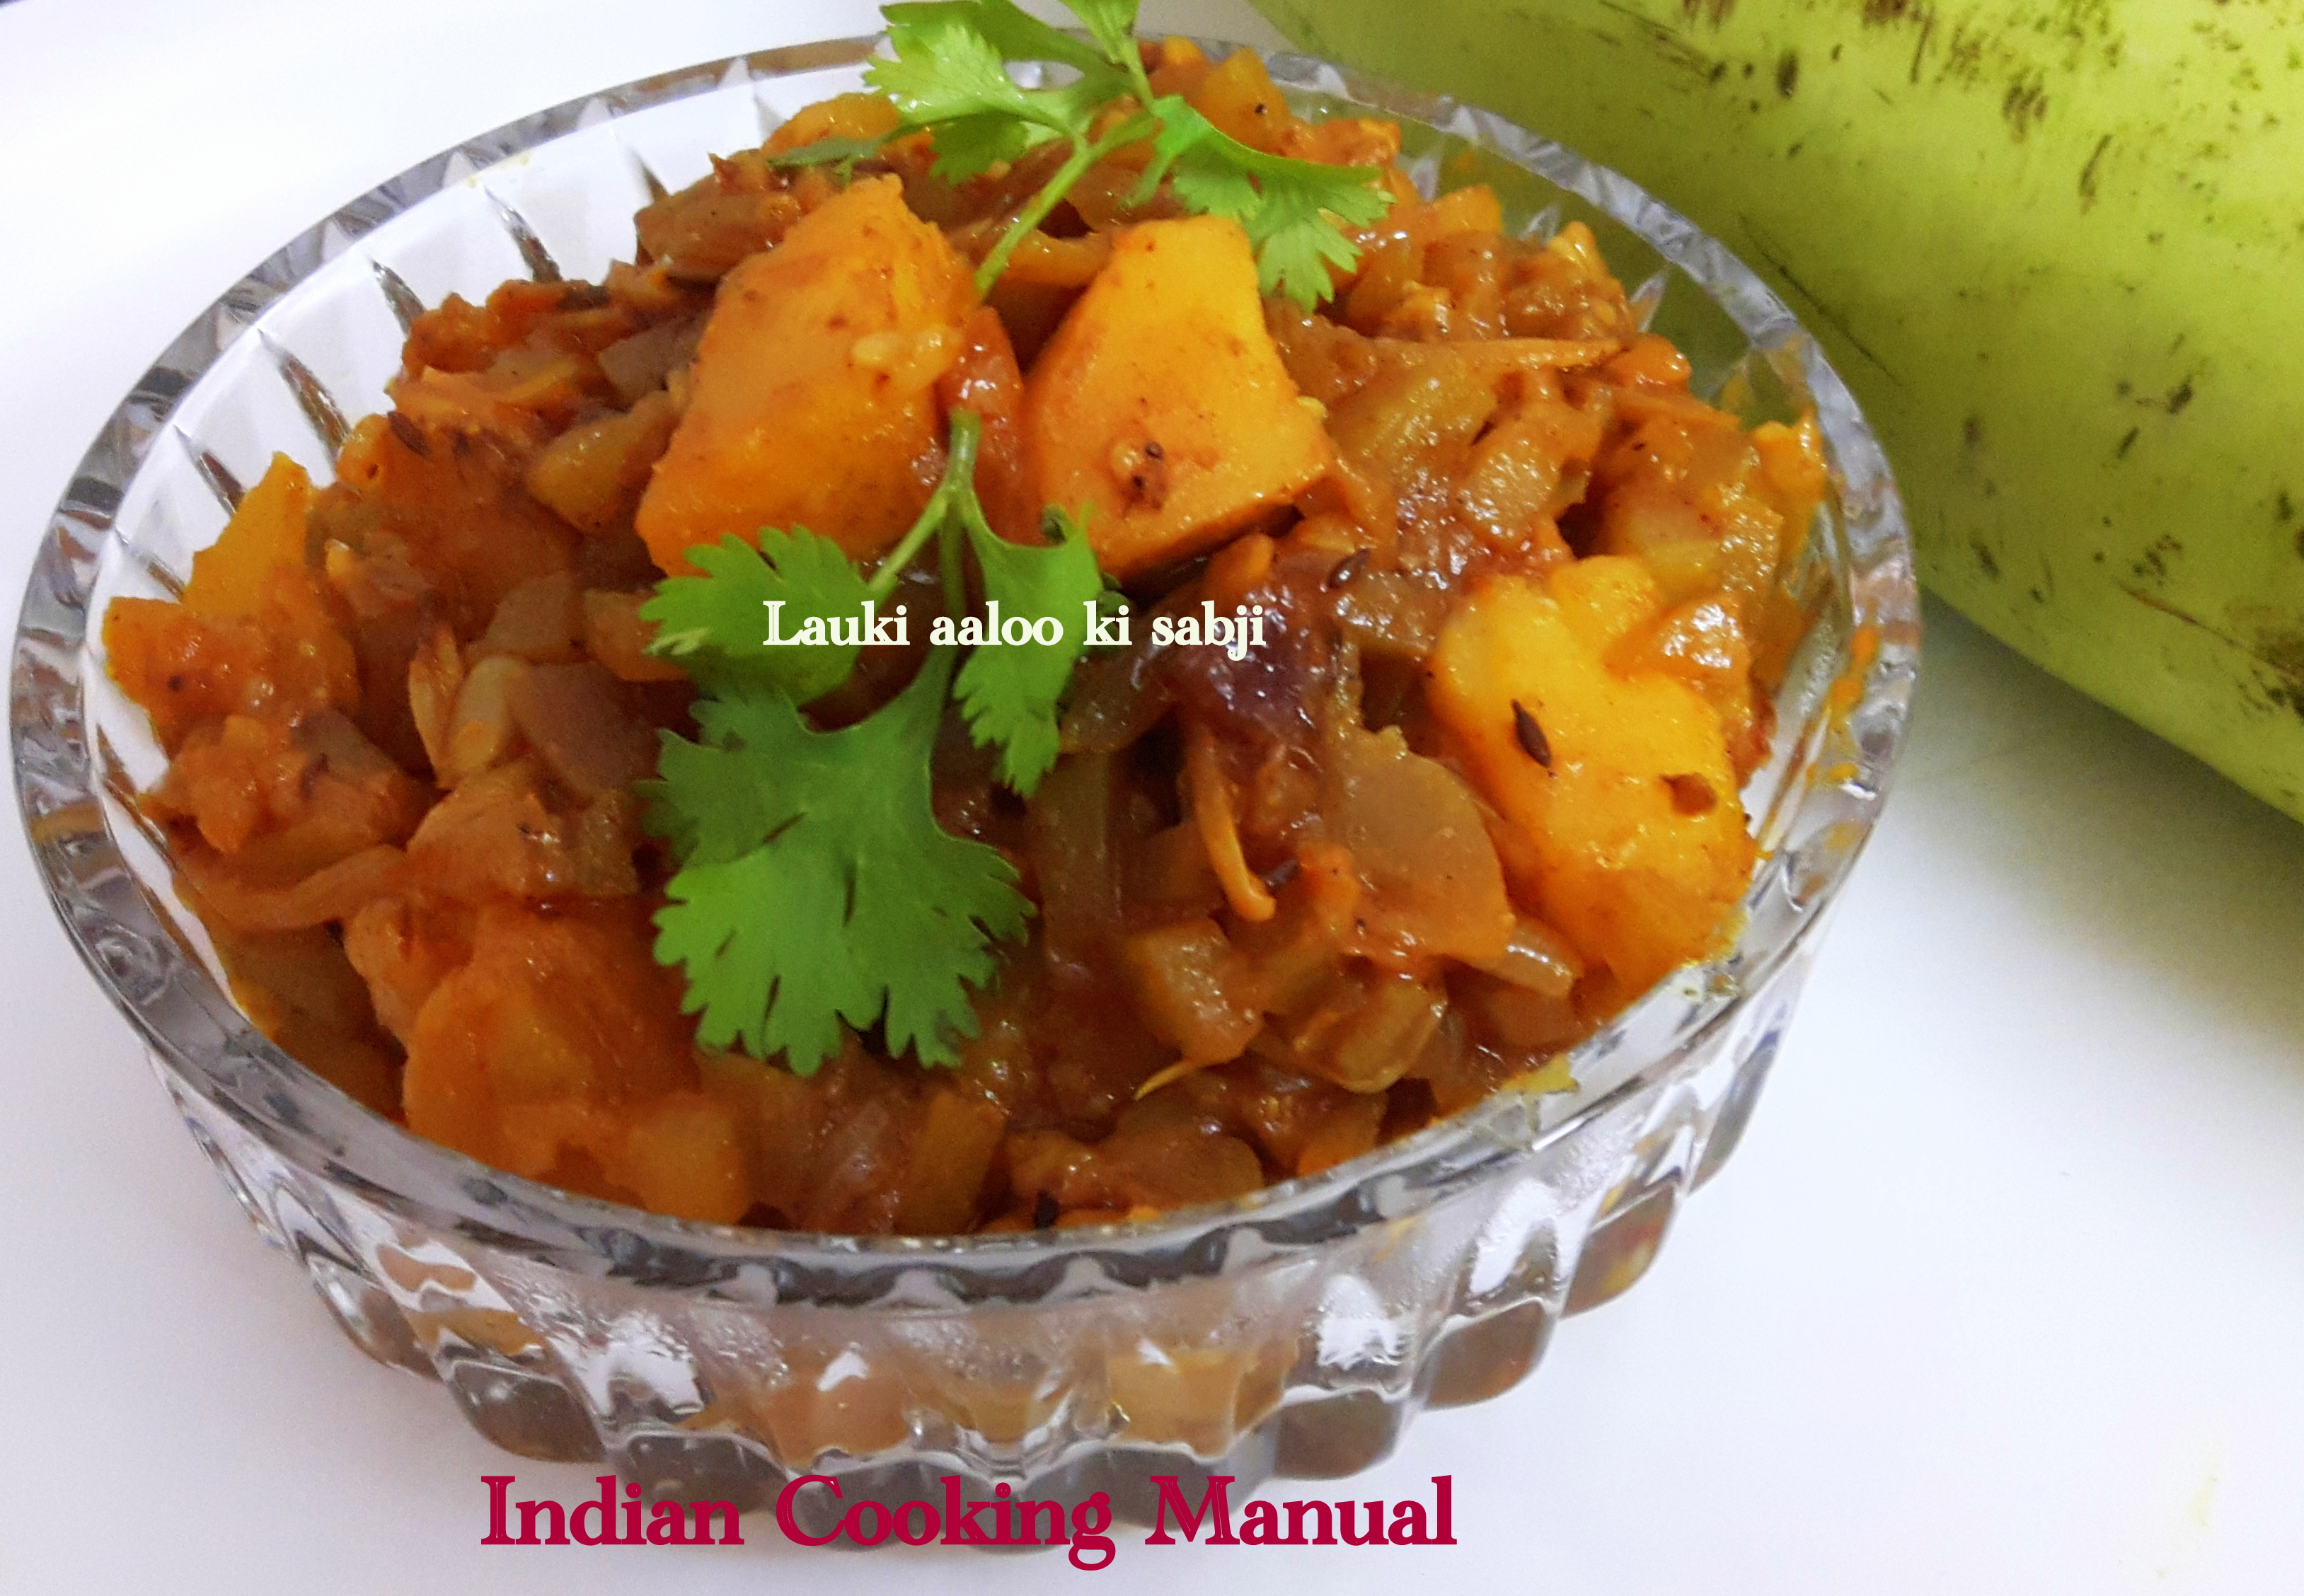 Lauki aaloo ki sabji (bottle gourd with potato)